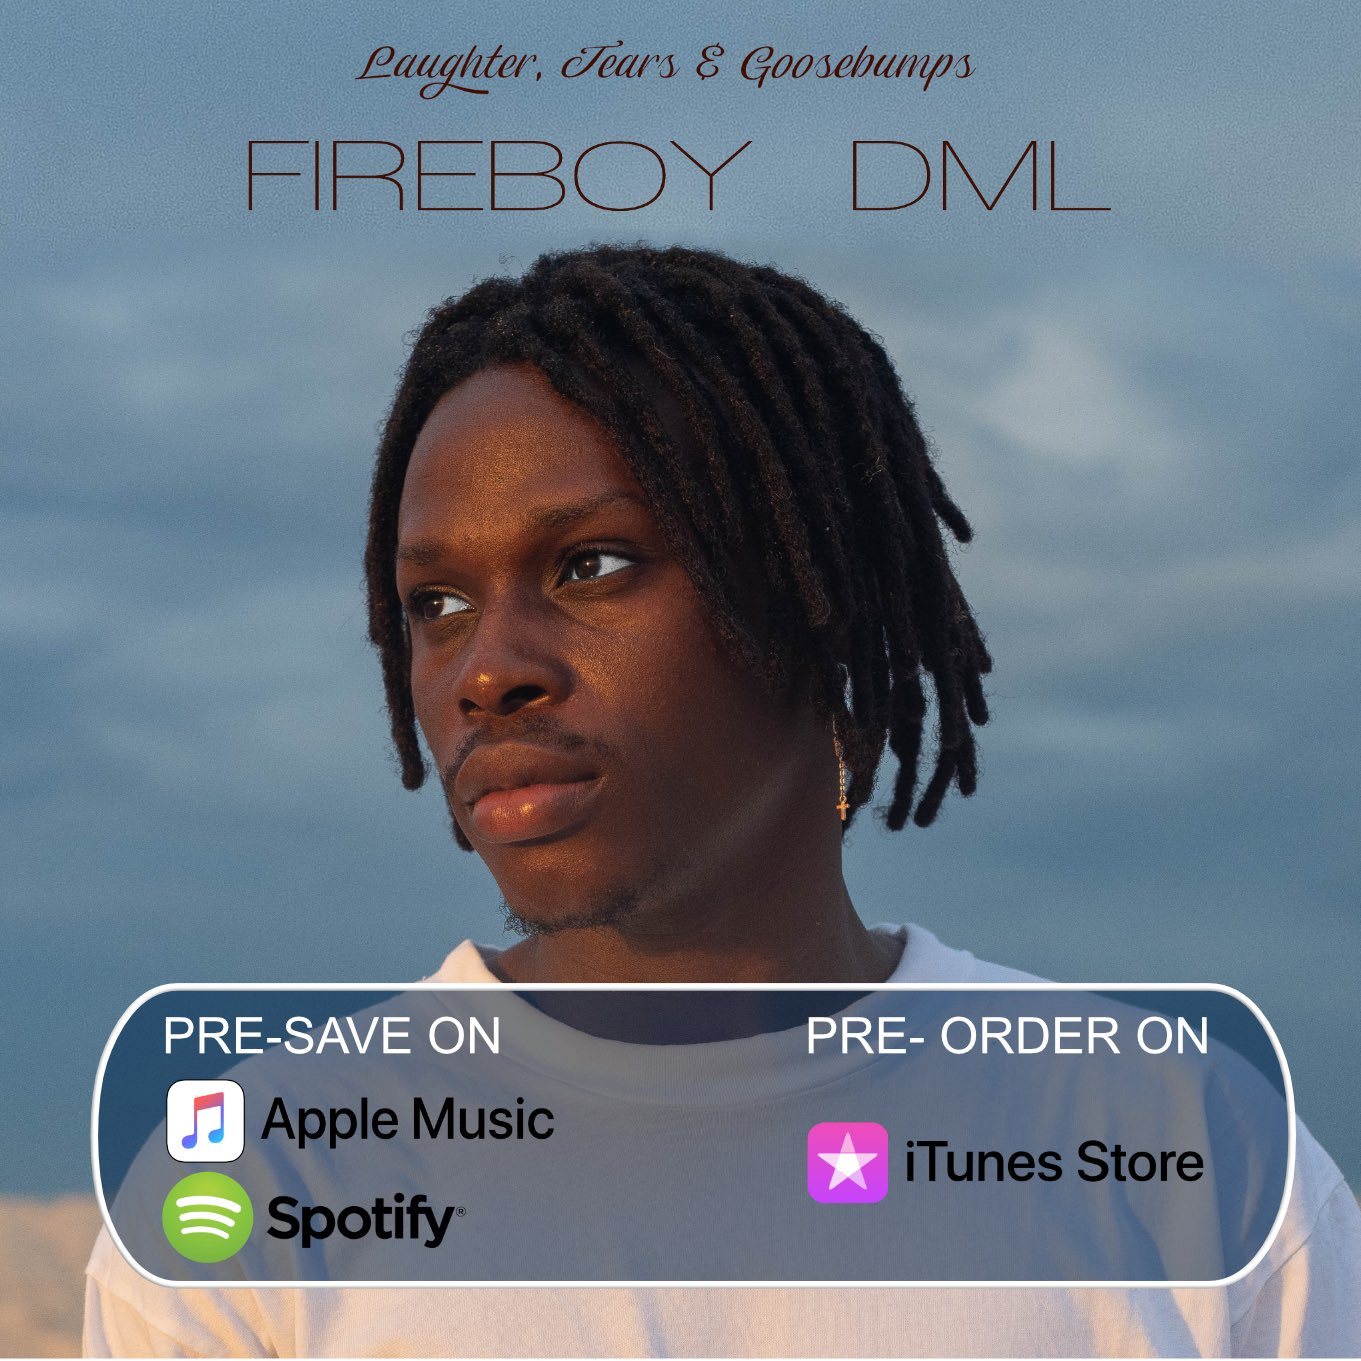 When is Fireboy's debut album due to be released?